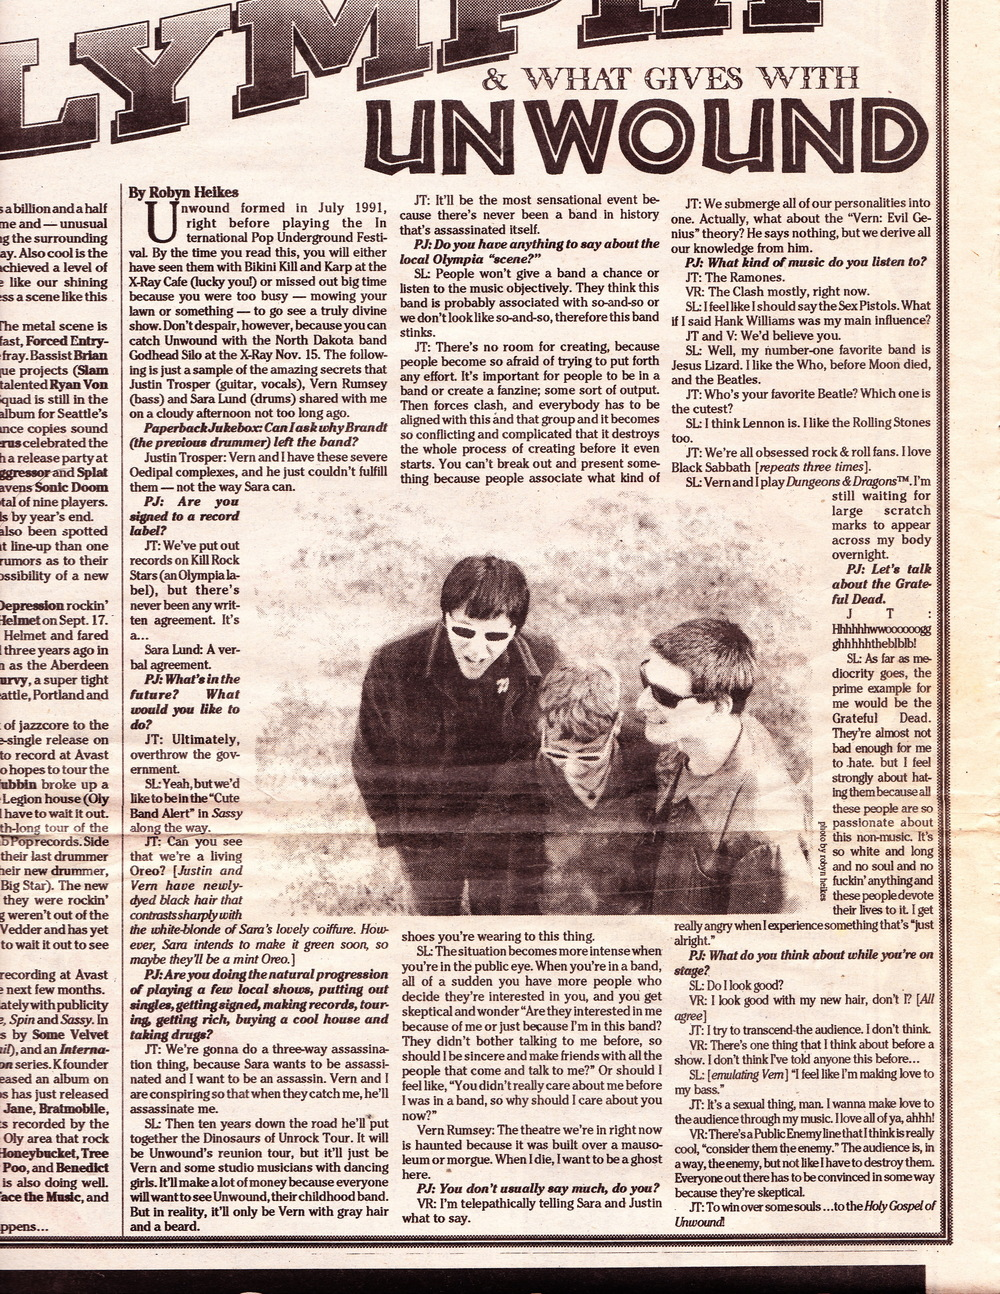 Paperback Jukebox Nov 1992. First interview with Sara as member.